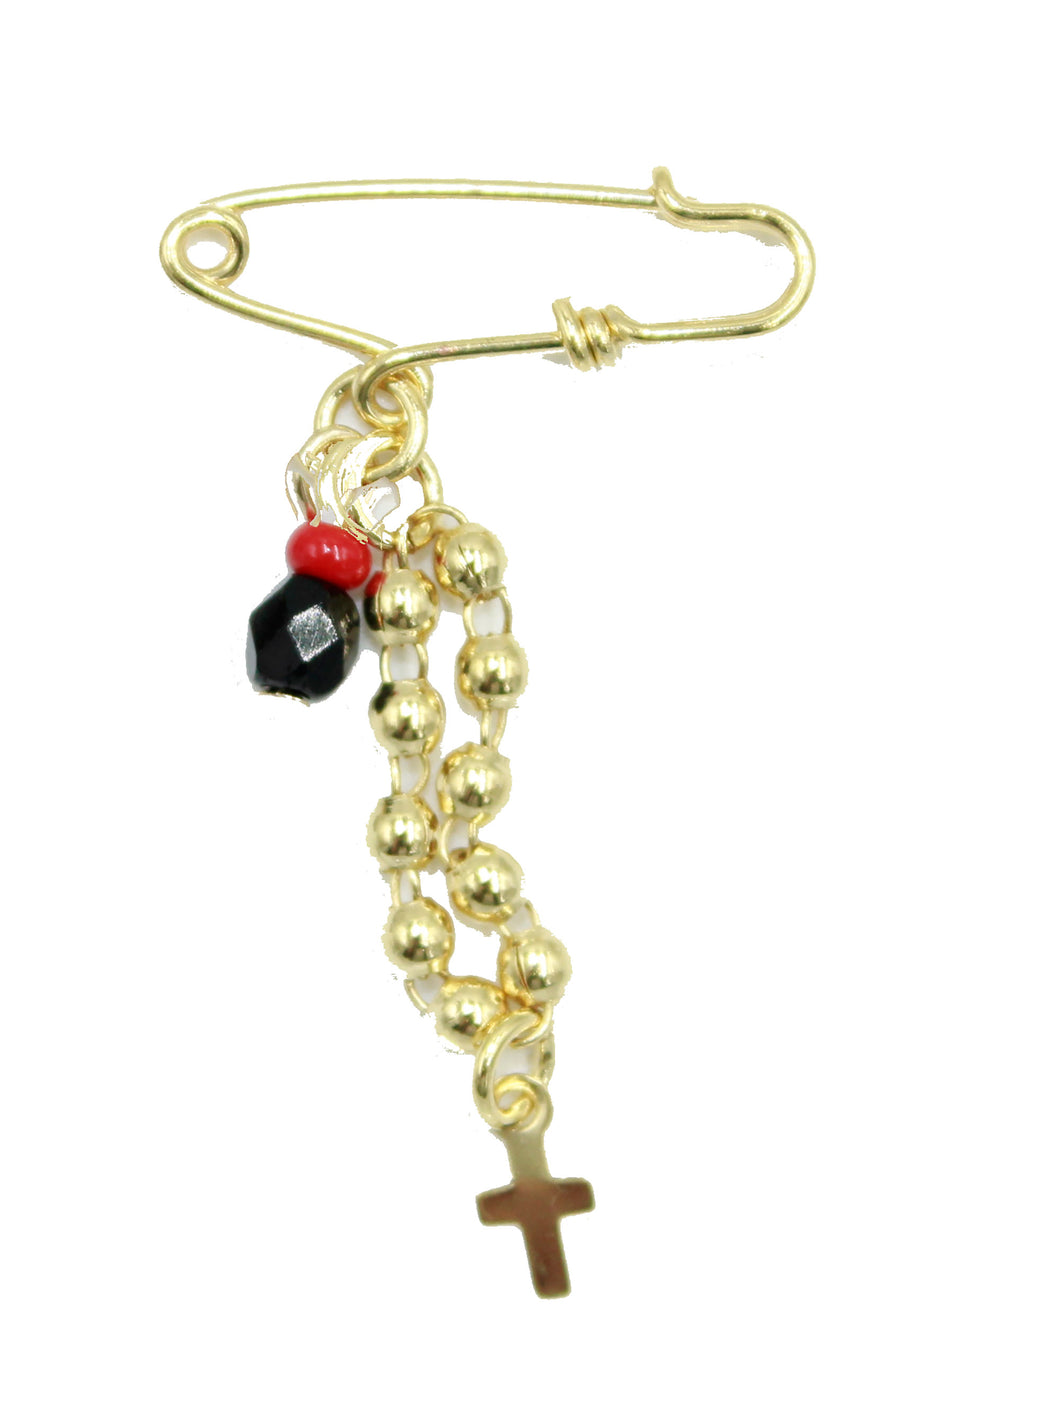 Rosary with Azabache Brooch 18k Gold Plated - Rosary with Azabache Pin